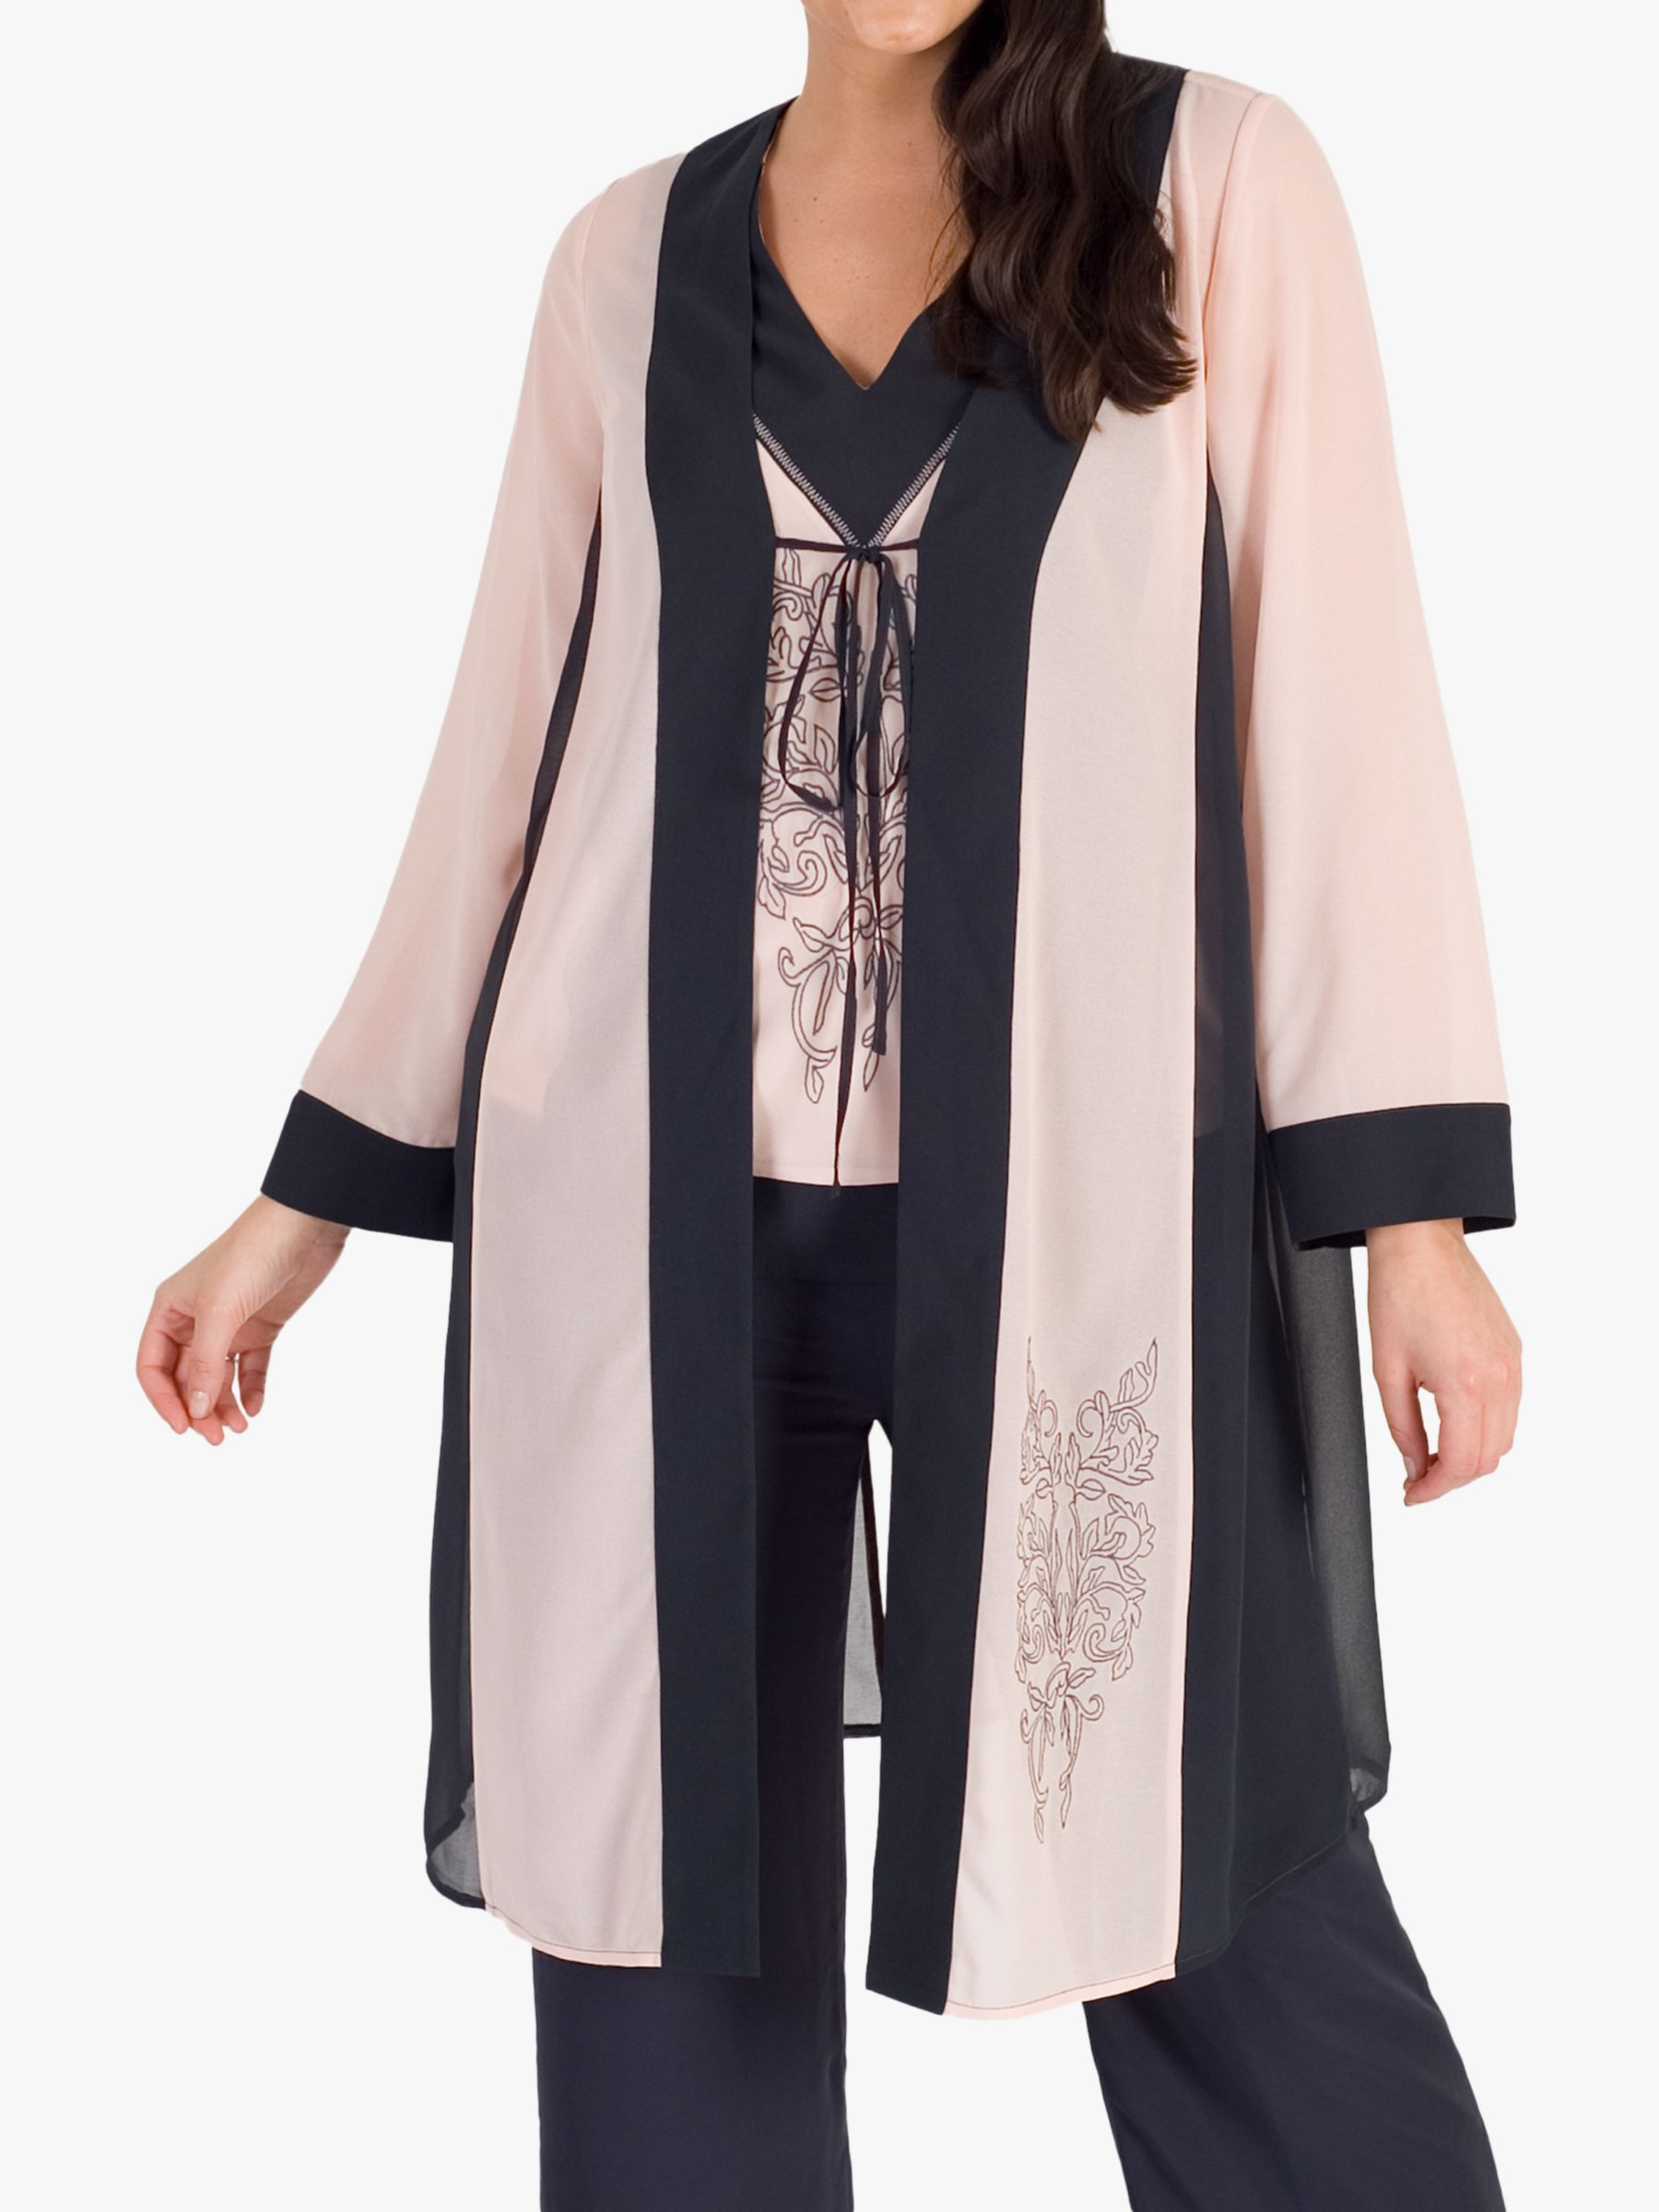 Chesca Chesca Contrast Trim Embroidered Chiffon Coat, Smoke/Shell